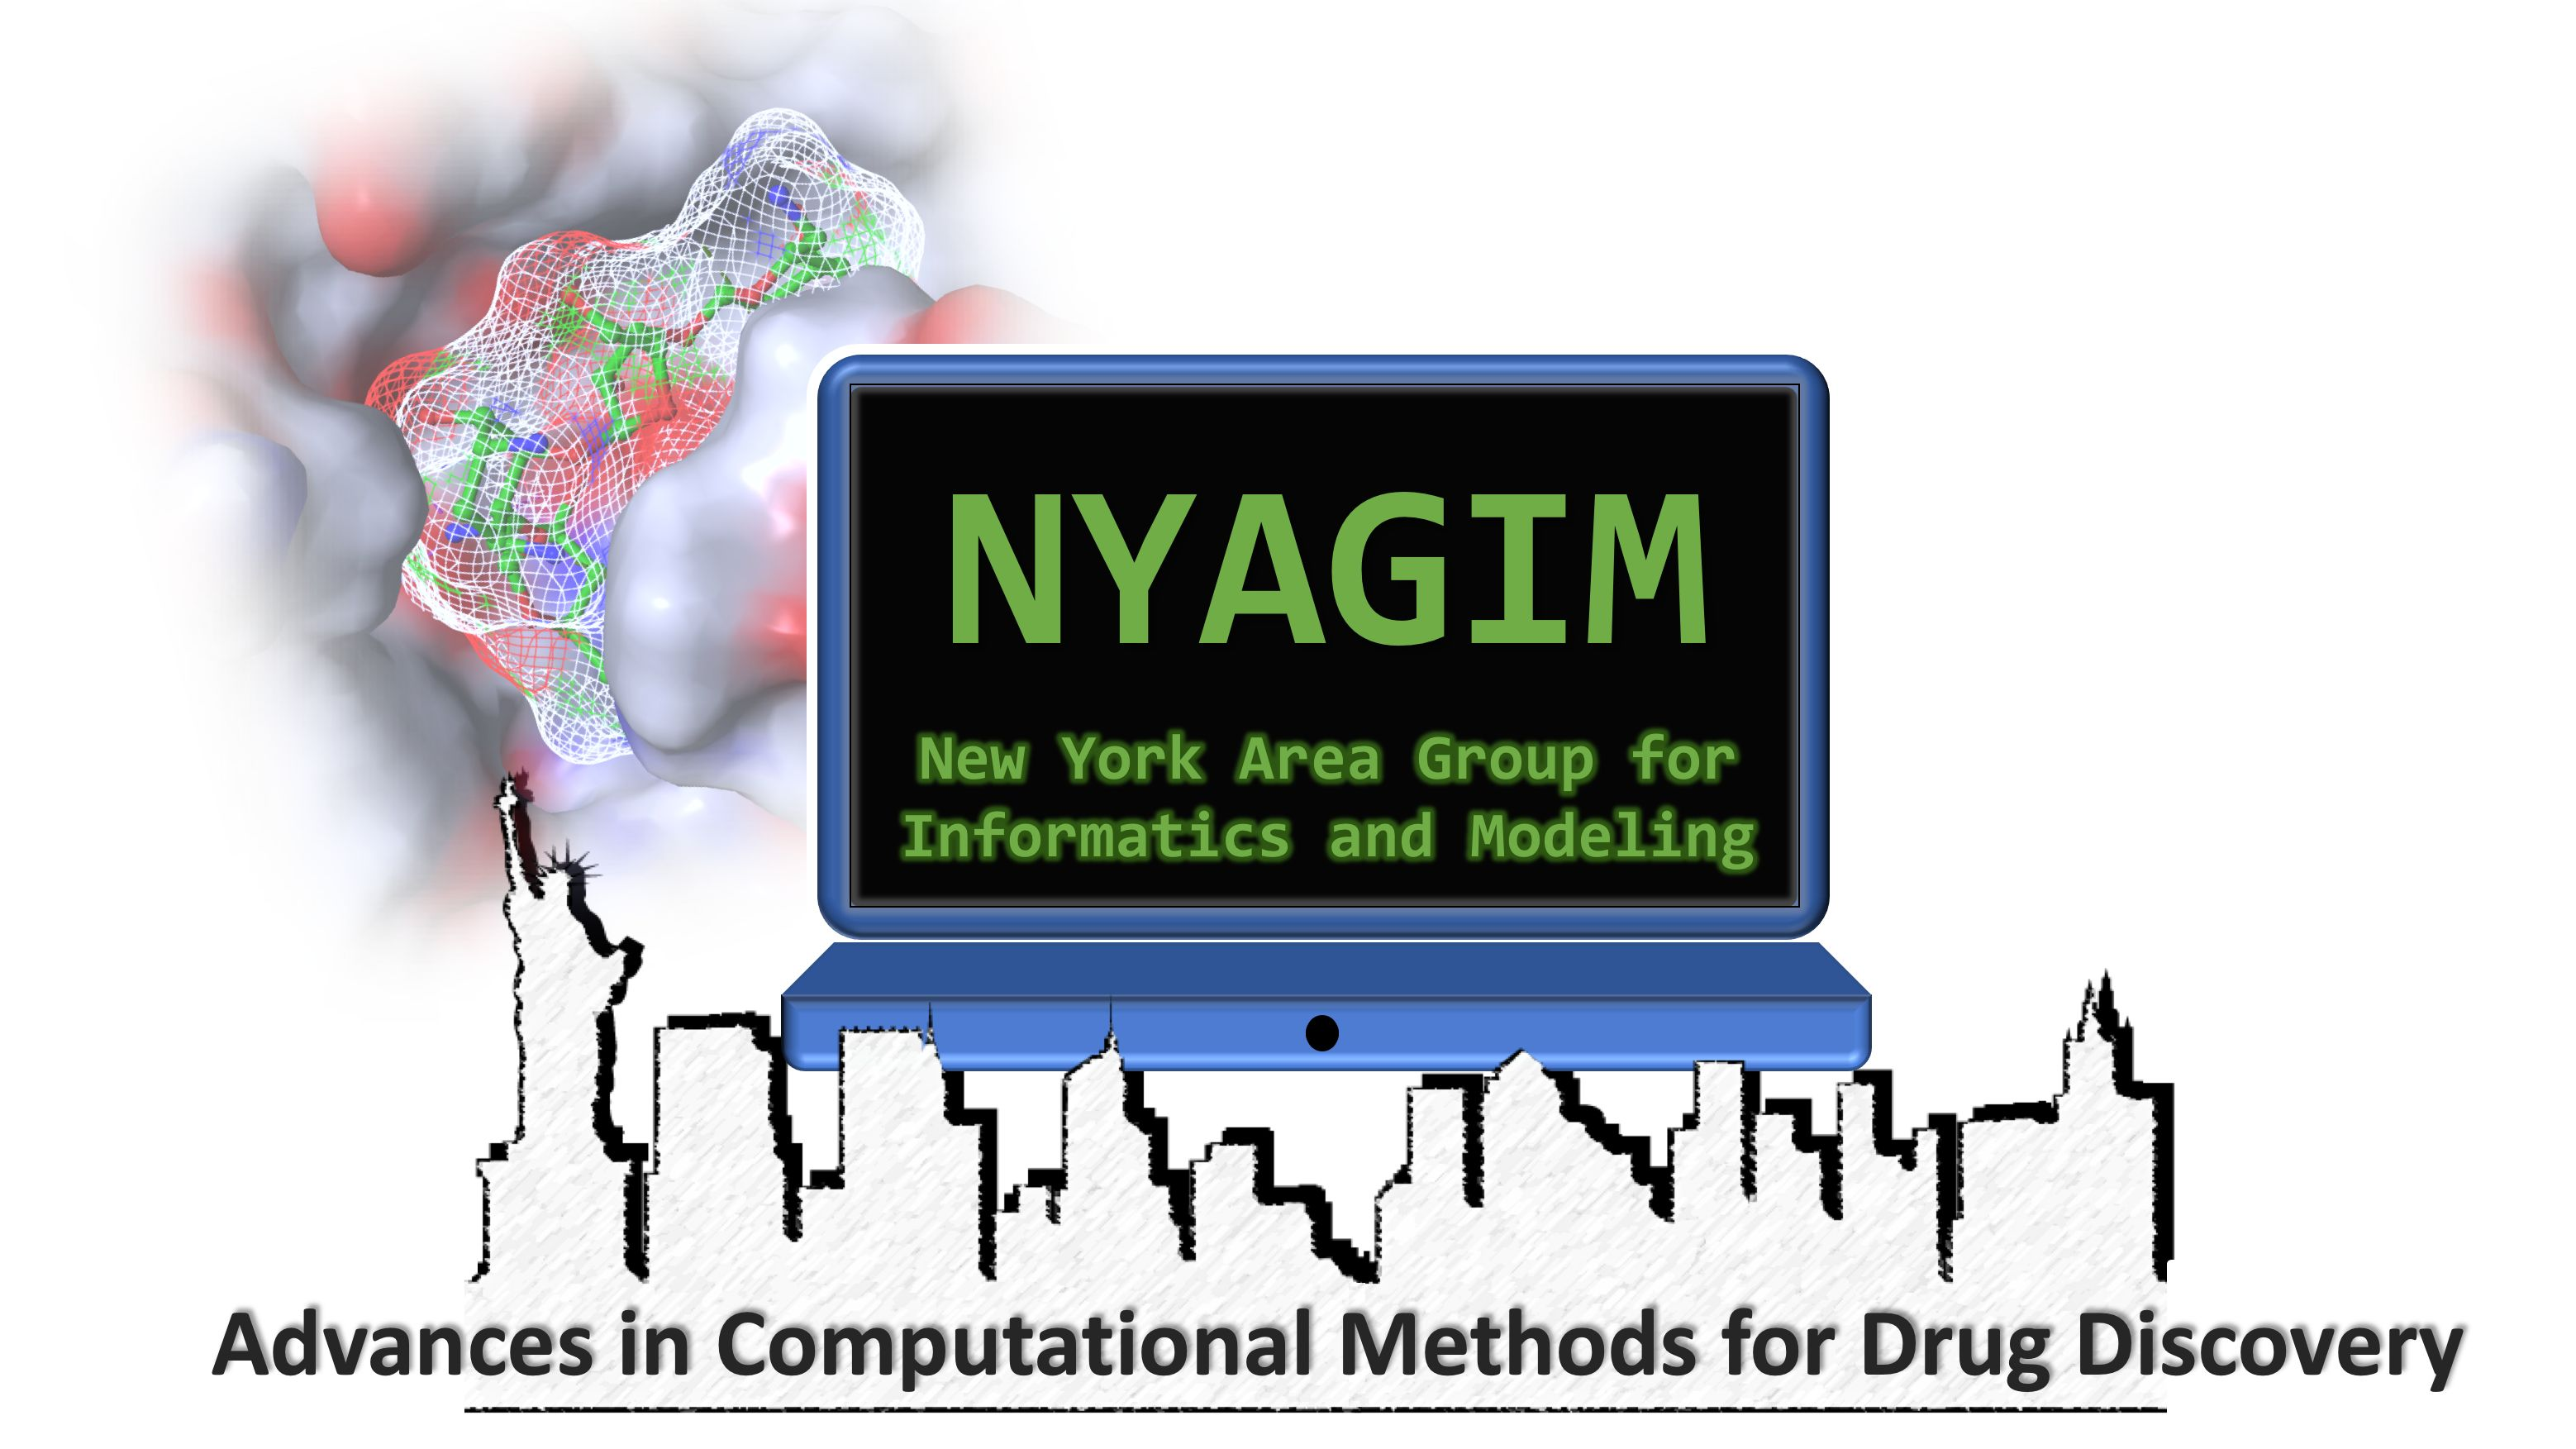 New York Area Group for Informatics and Modeling (NYAGIM)